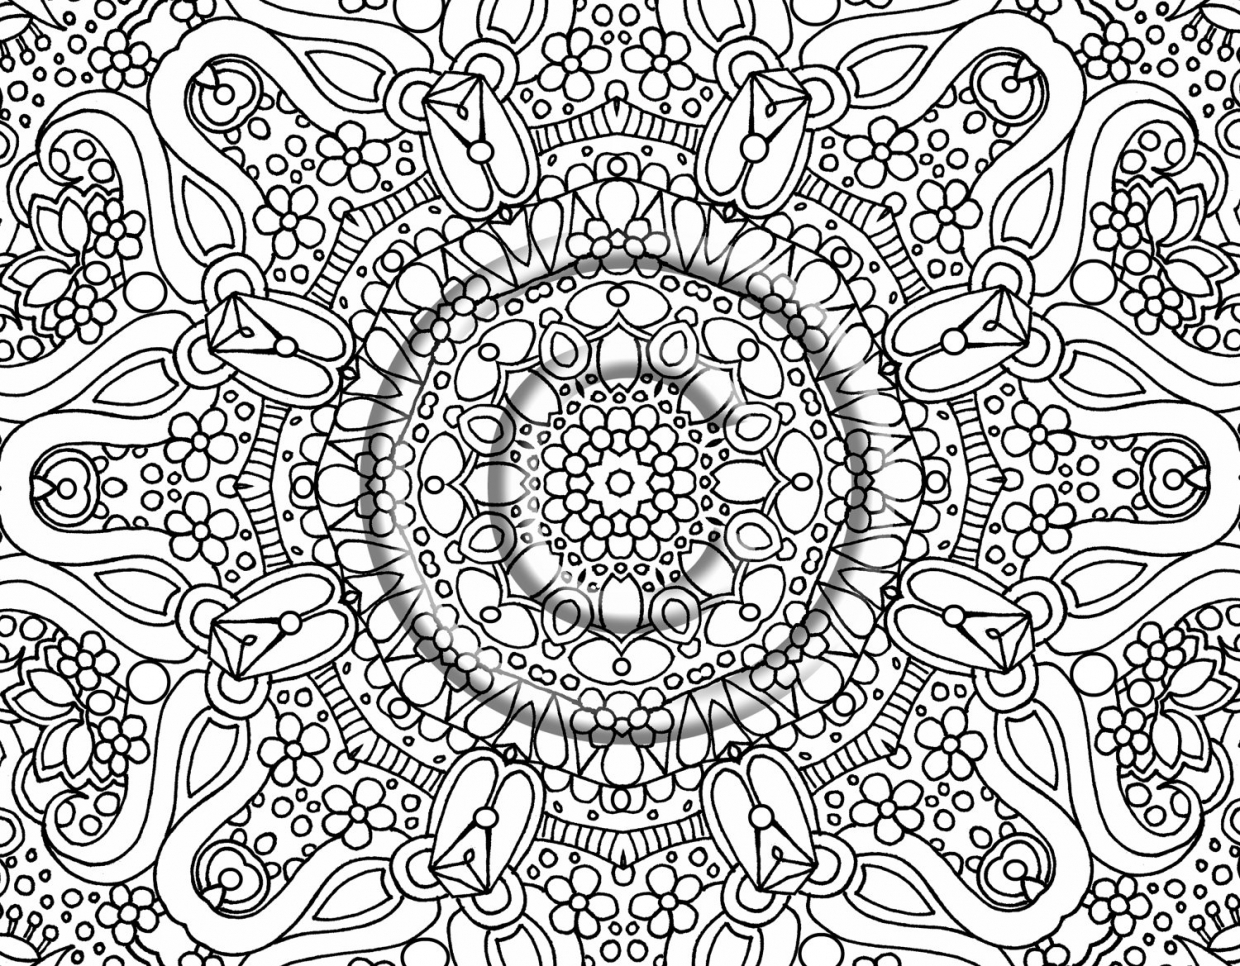 freeonline coloring pages - photo#7